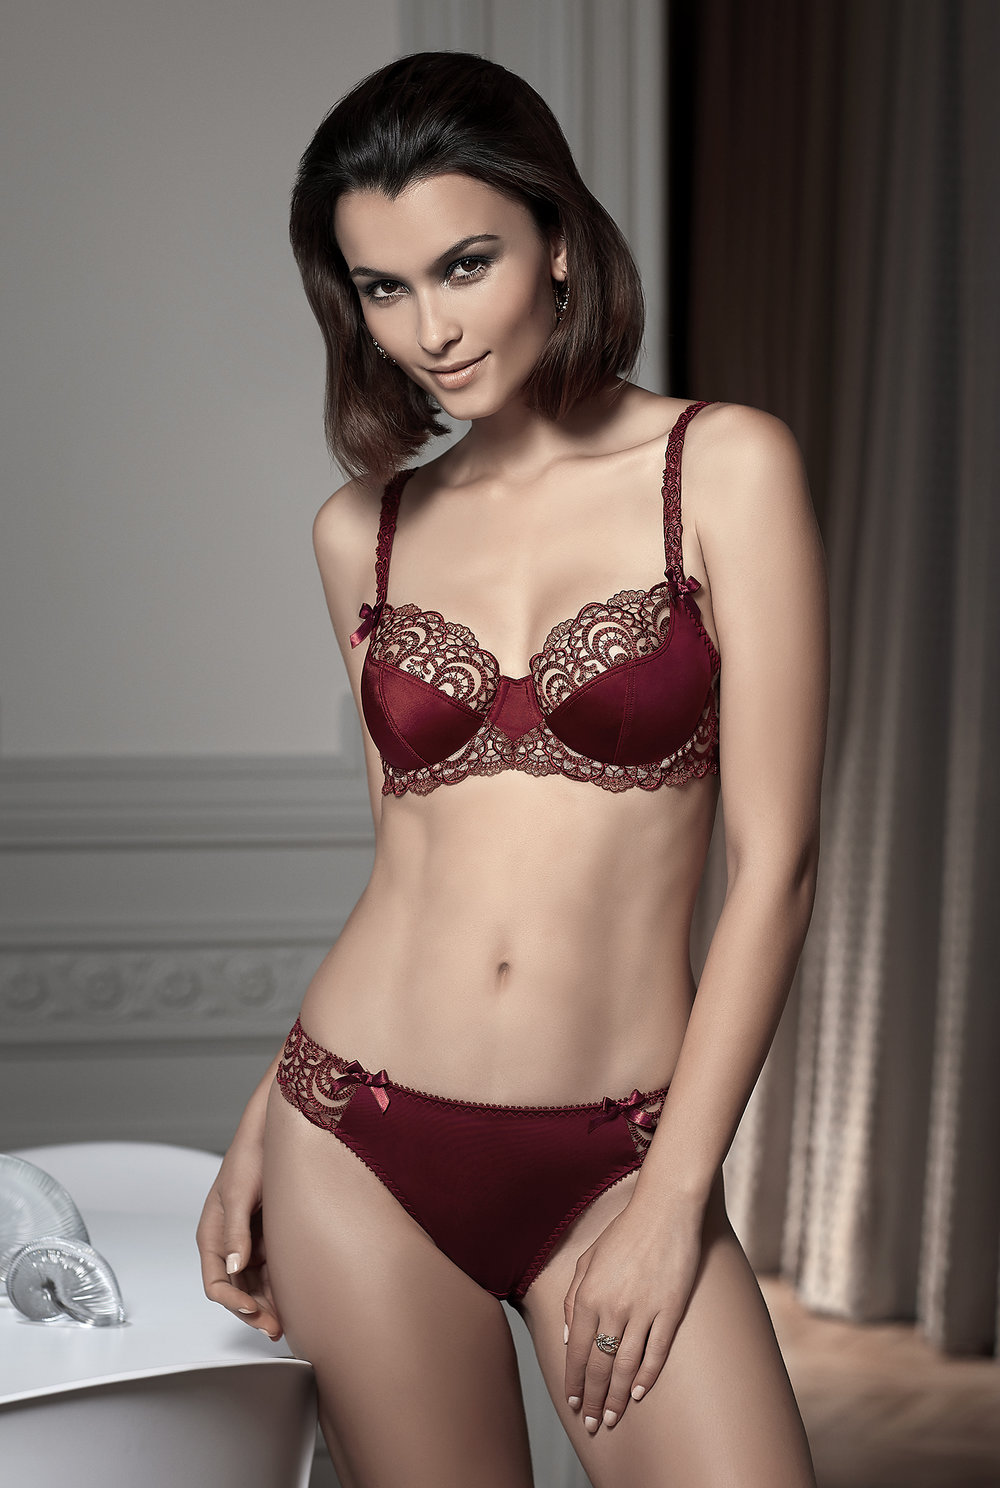 Ode à l'Amour   fuller-figure balconnet, sizes 100 c ; 85 to 100 d, e, f : $89      String, sizes 38 to 44 : $57